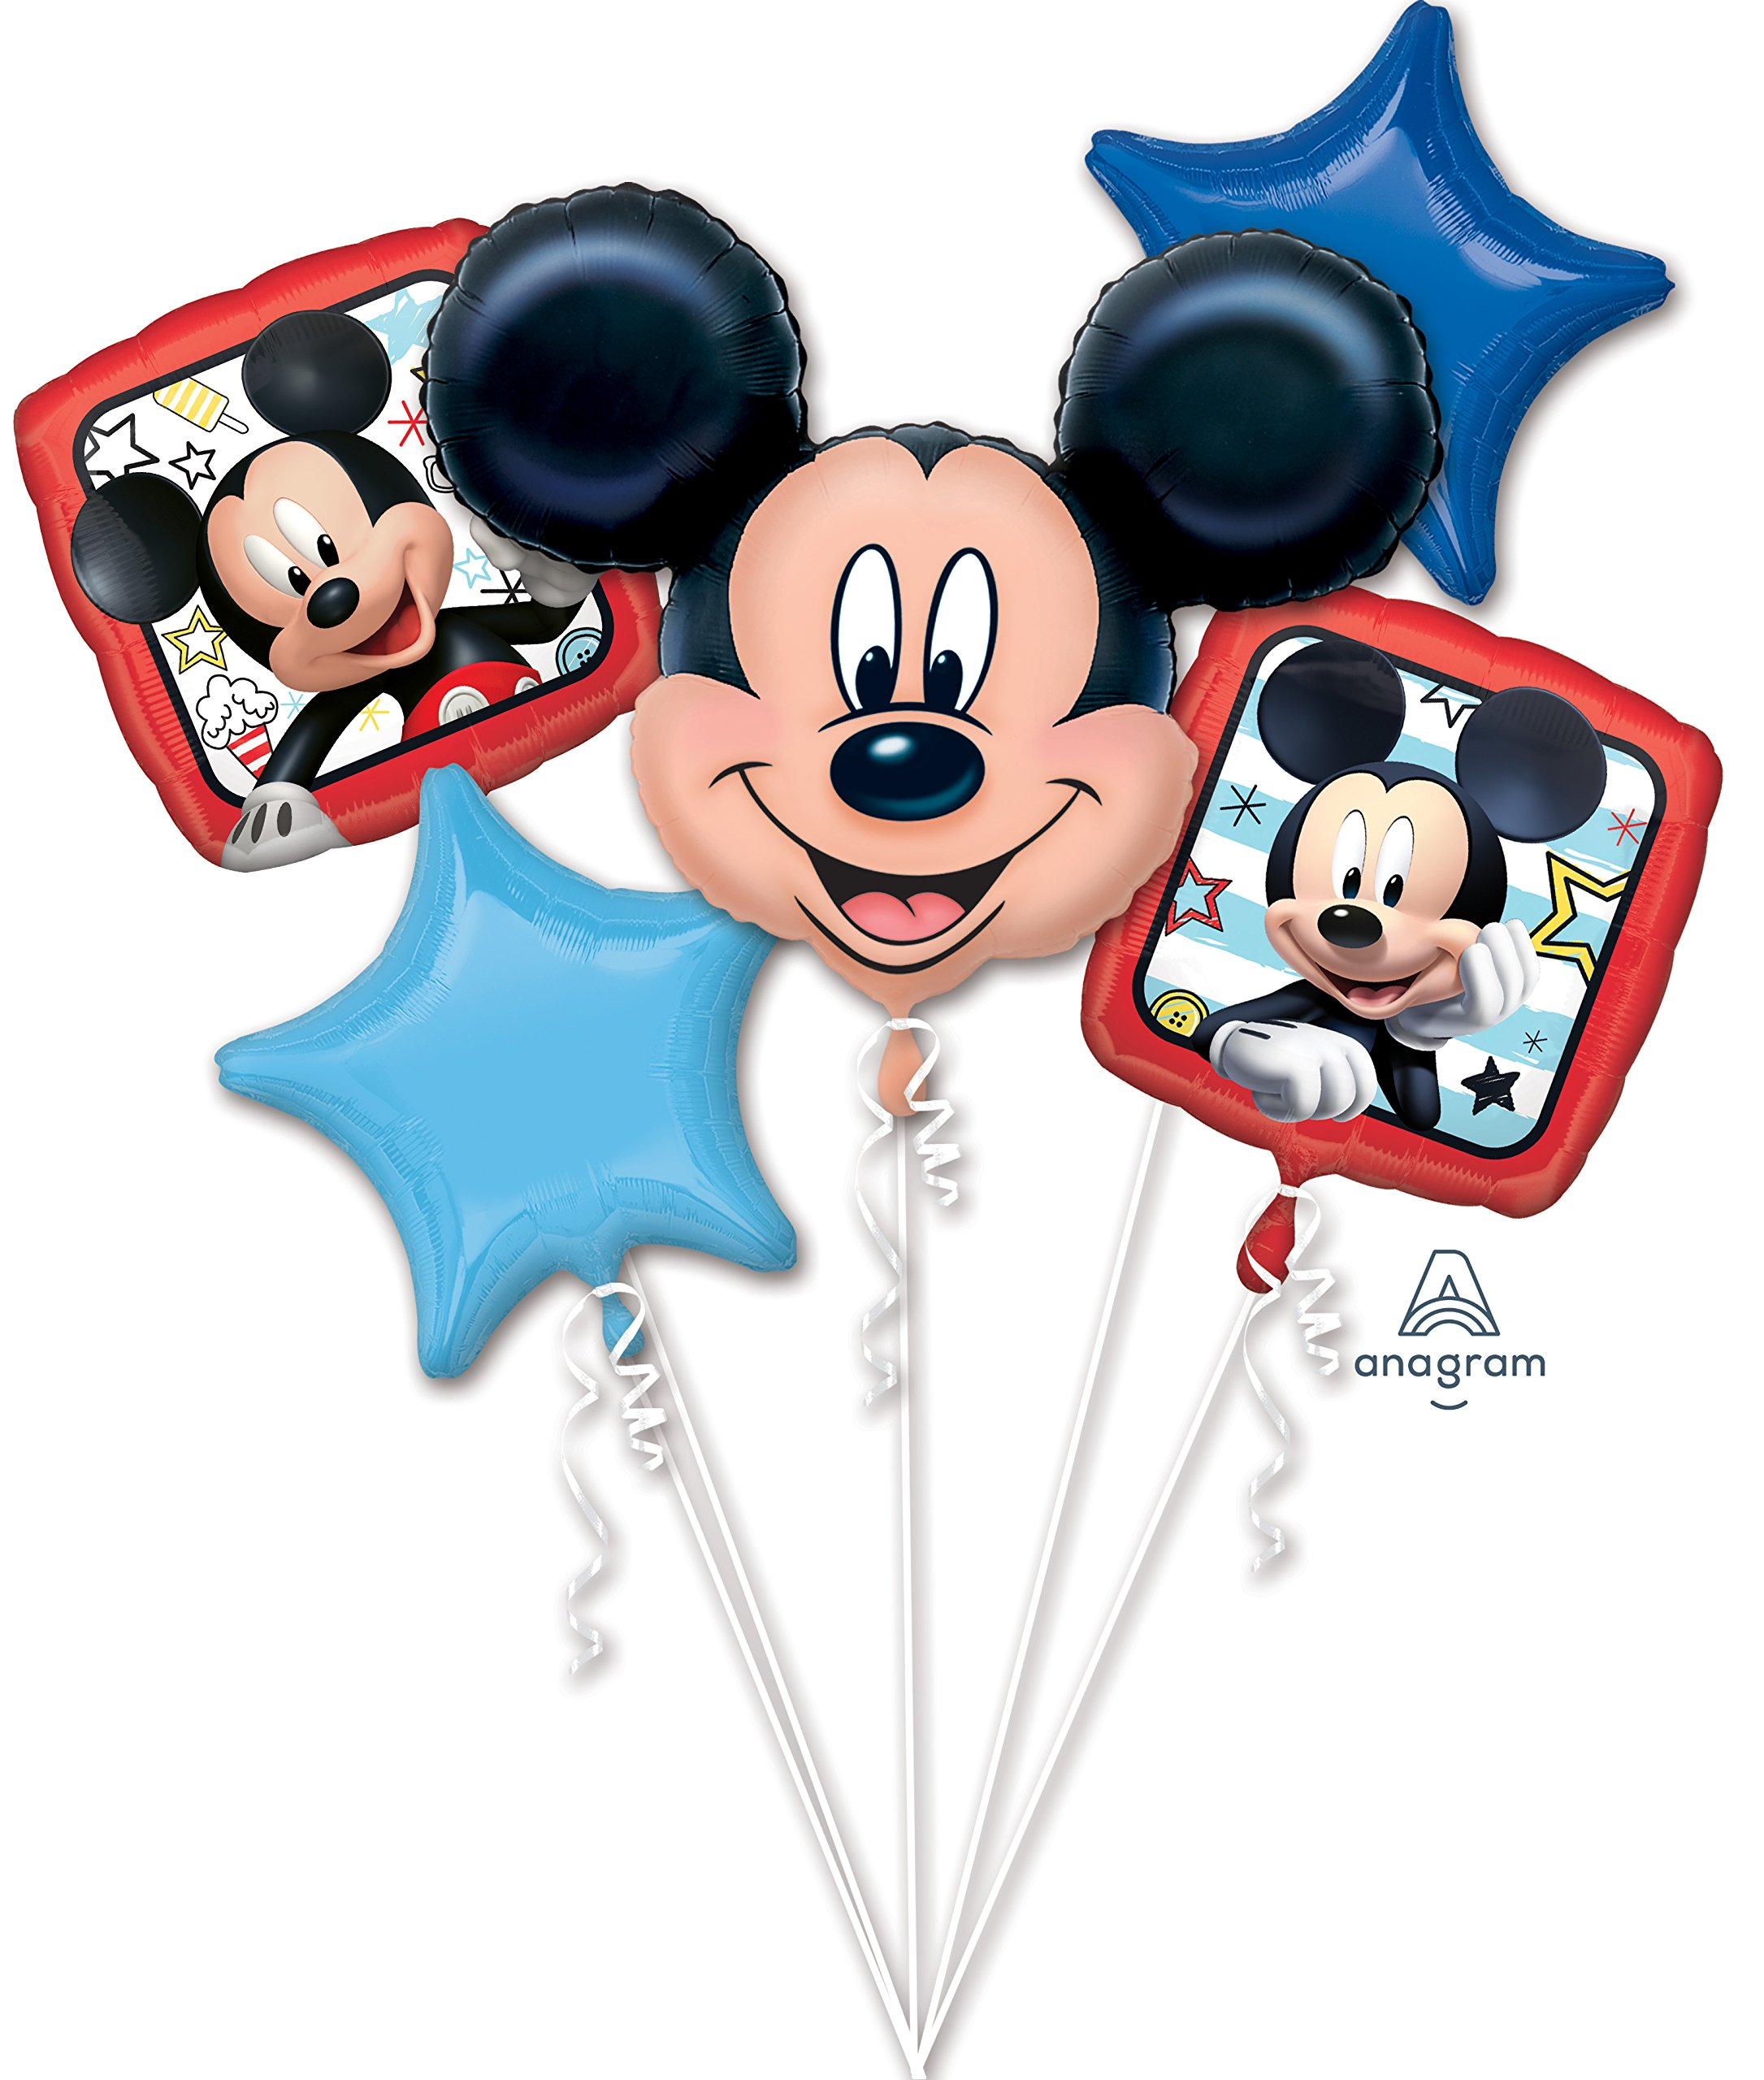 The Ultimate Mickey and Minnie Mouse Airwalker Birthday Party Supplies and 13pc Balloon Bouquet Decorations